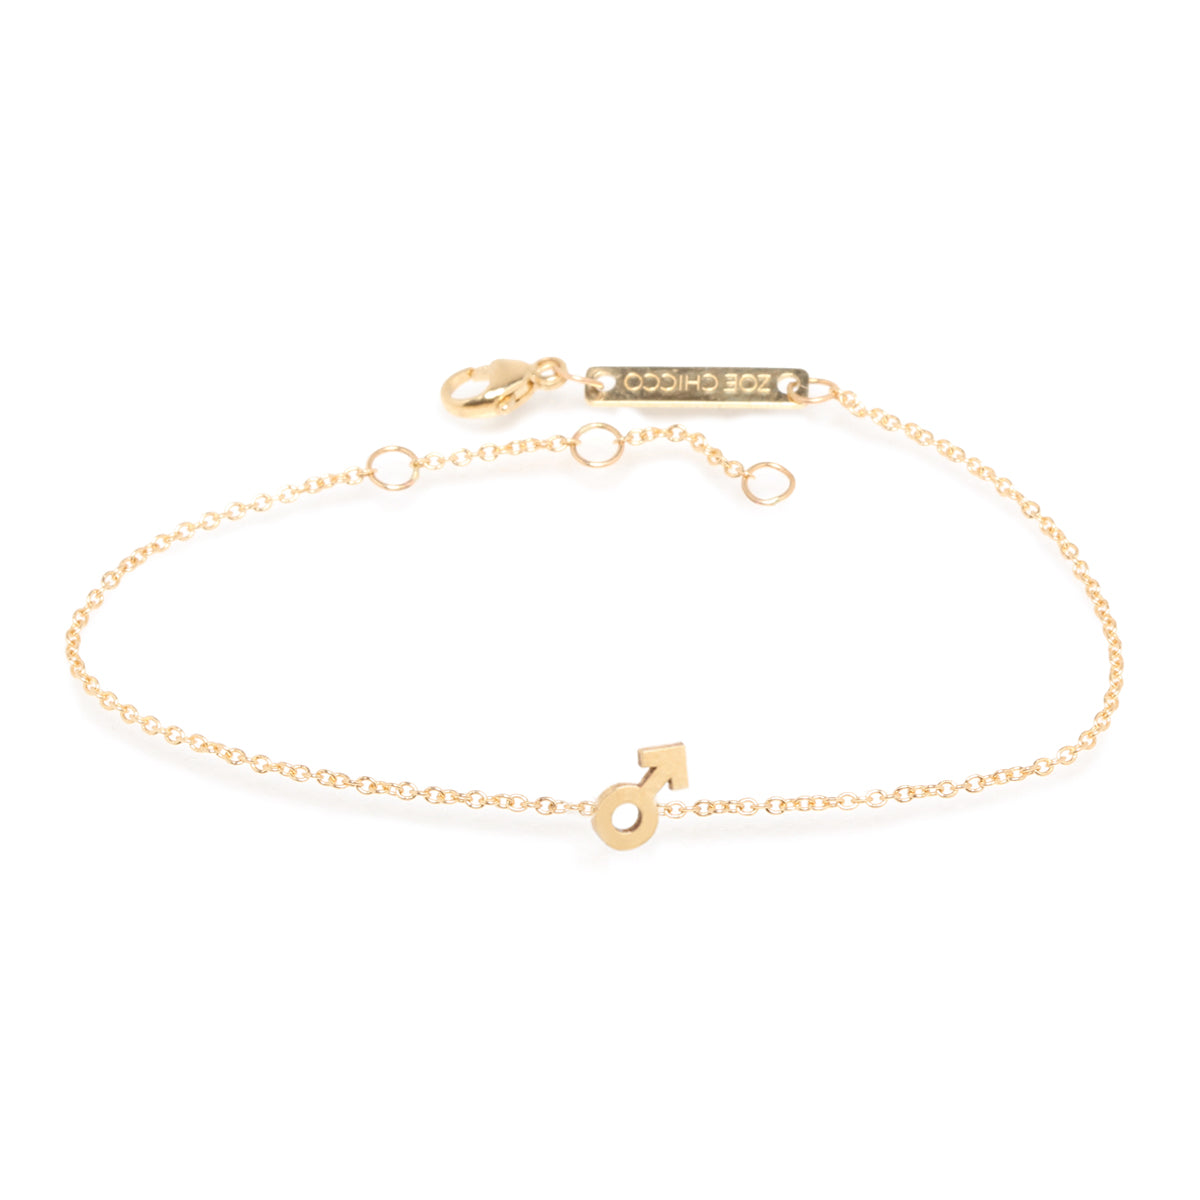 14k itty bitty male symbol bracelet